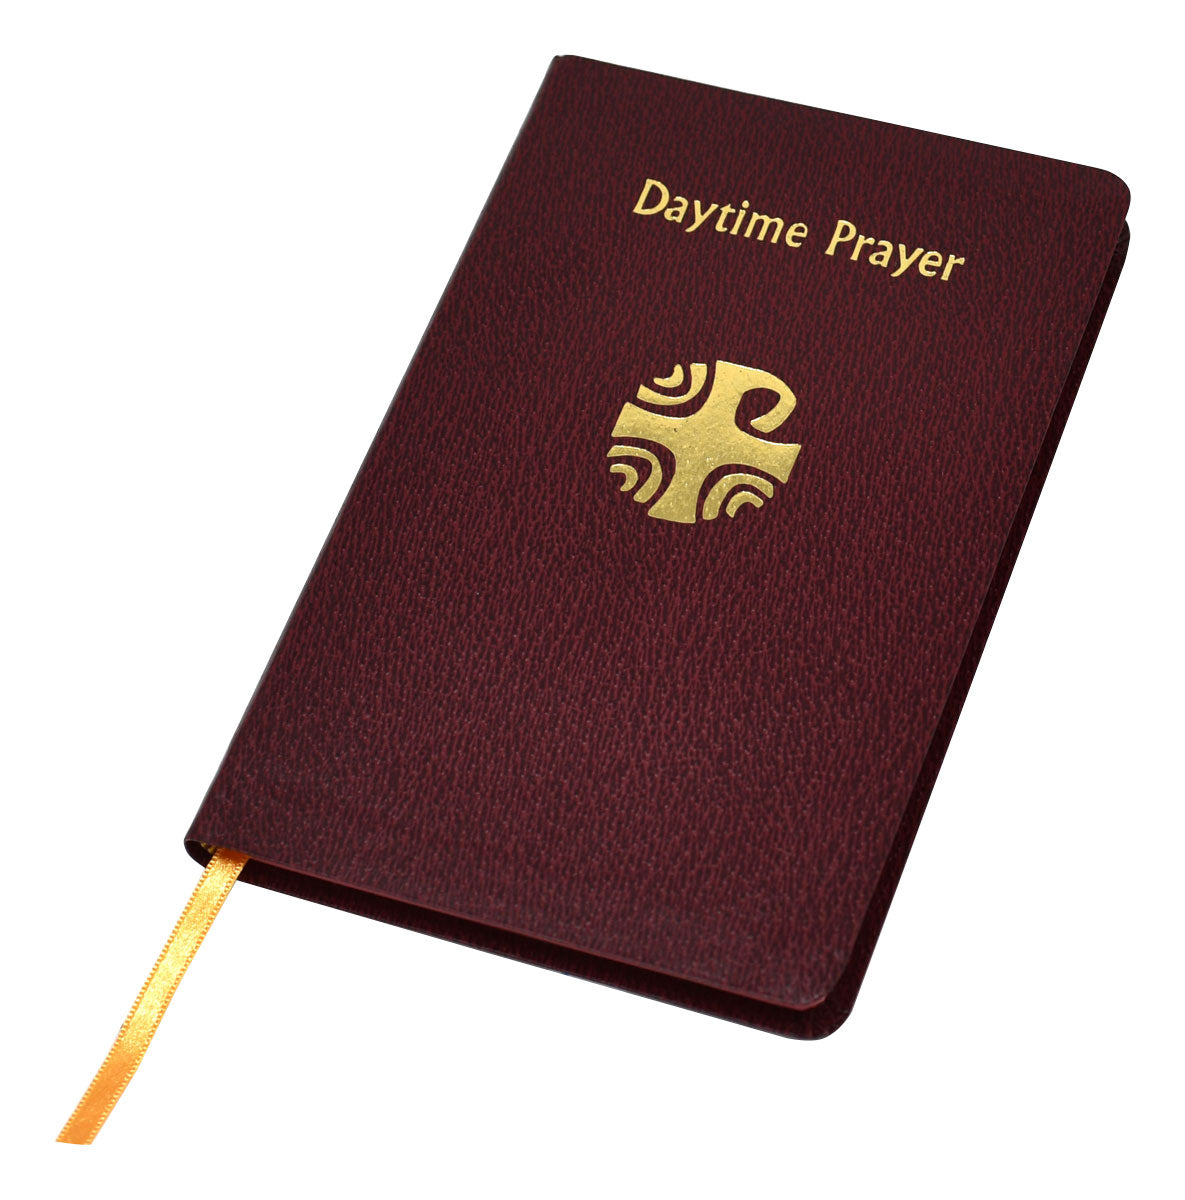 Daytime Prayer The Liturgy Of The Hours